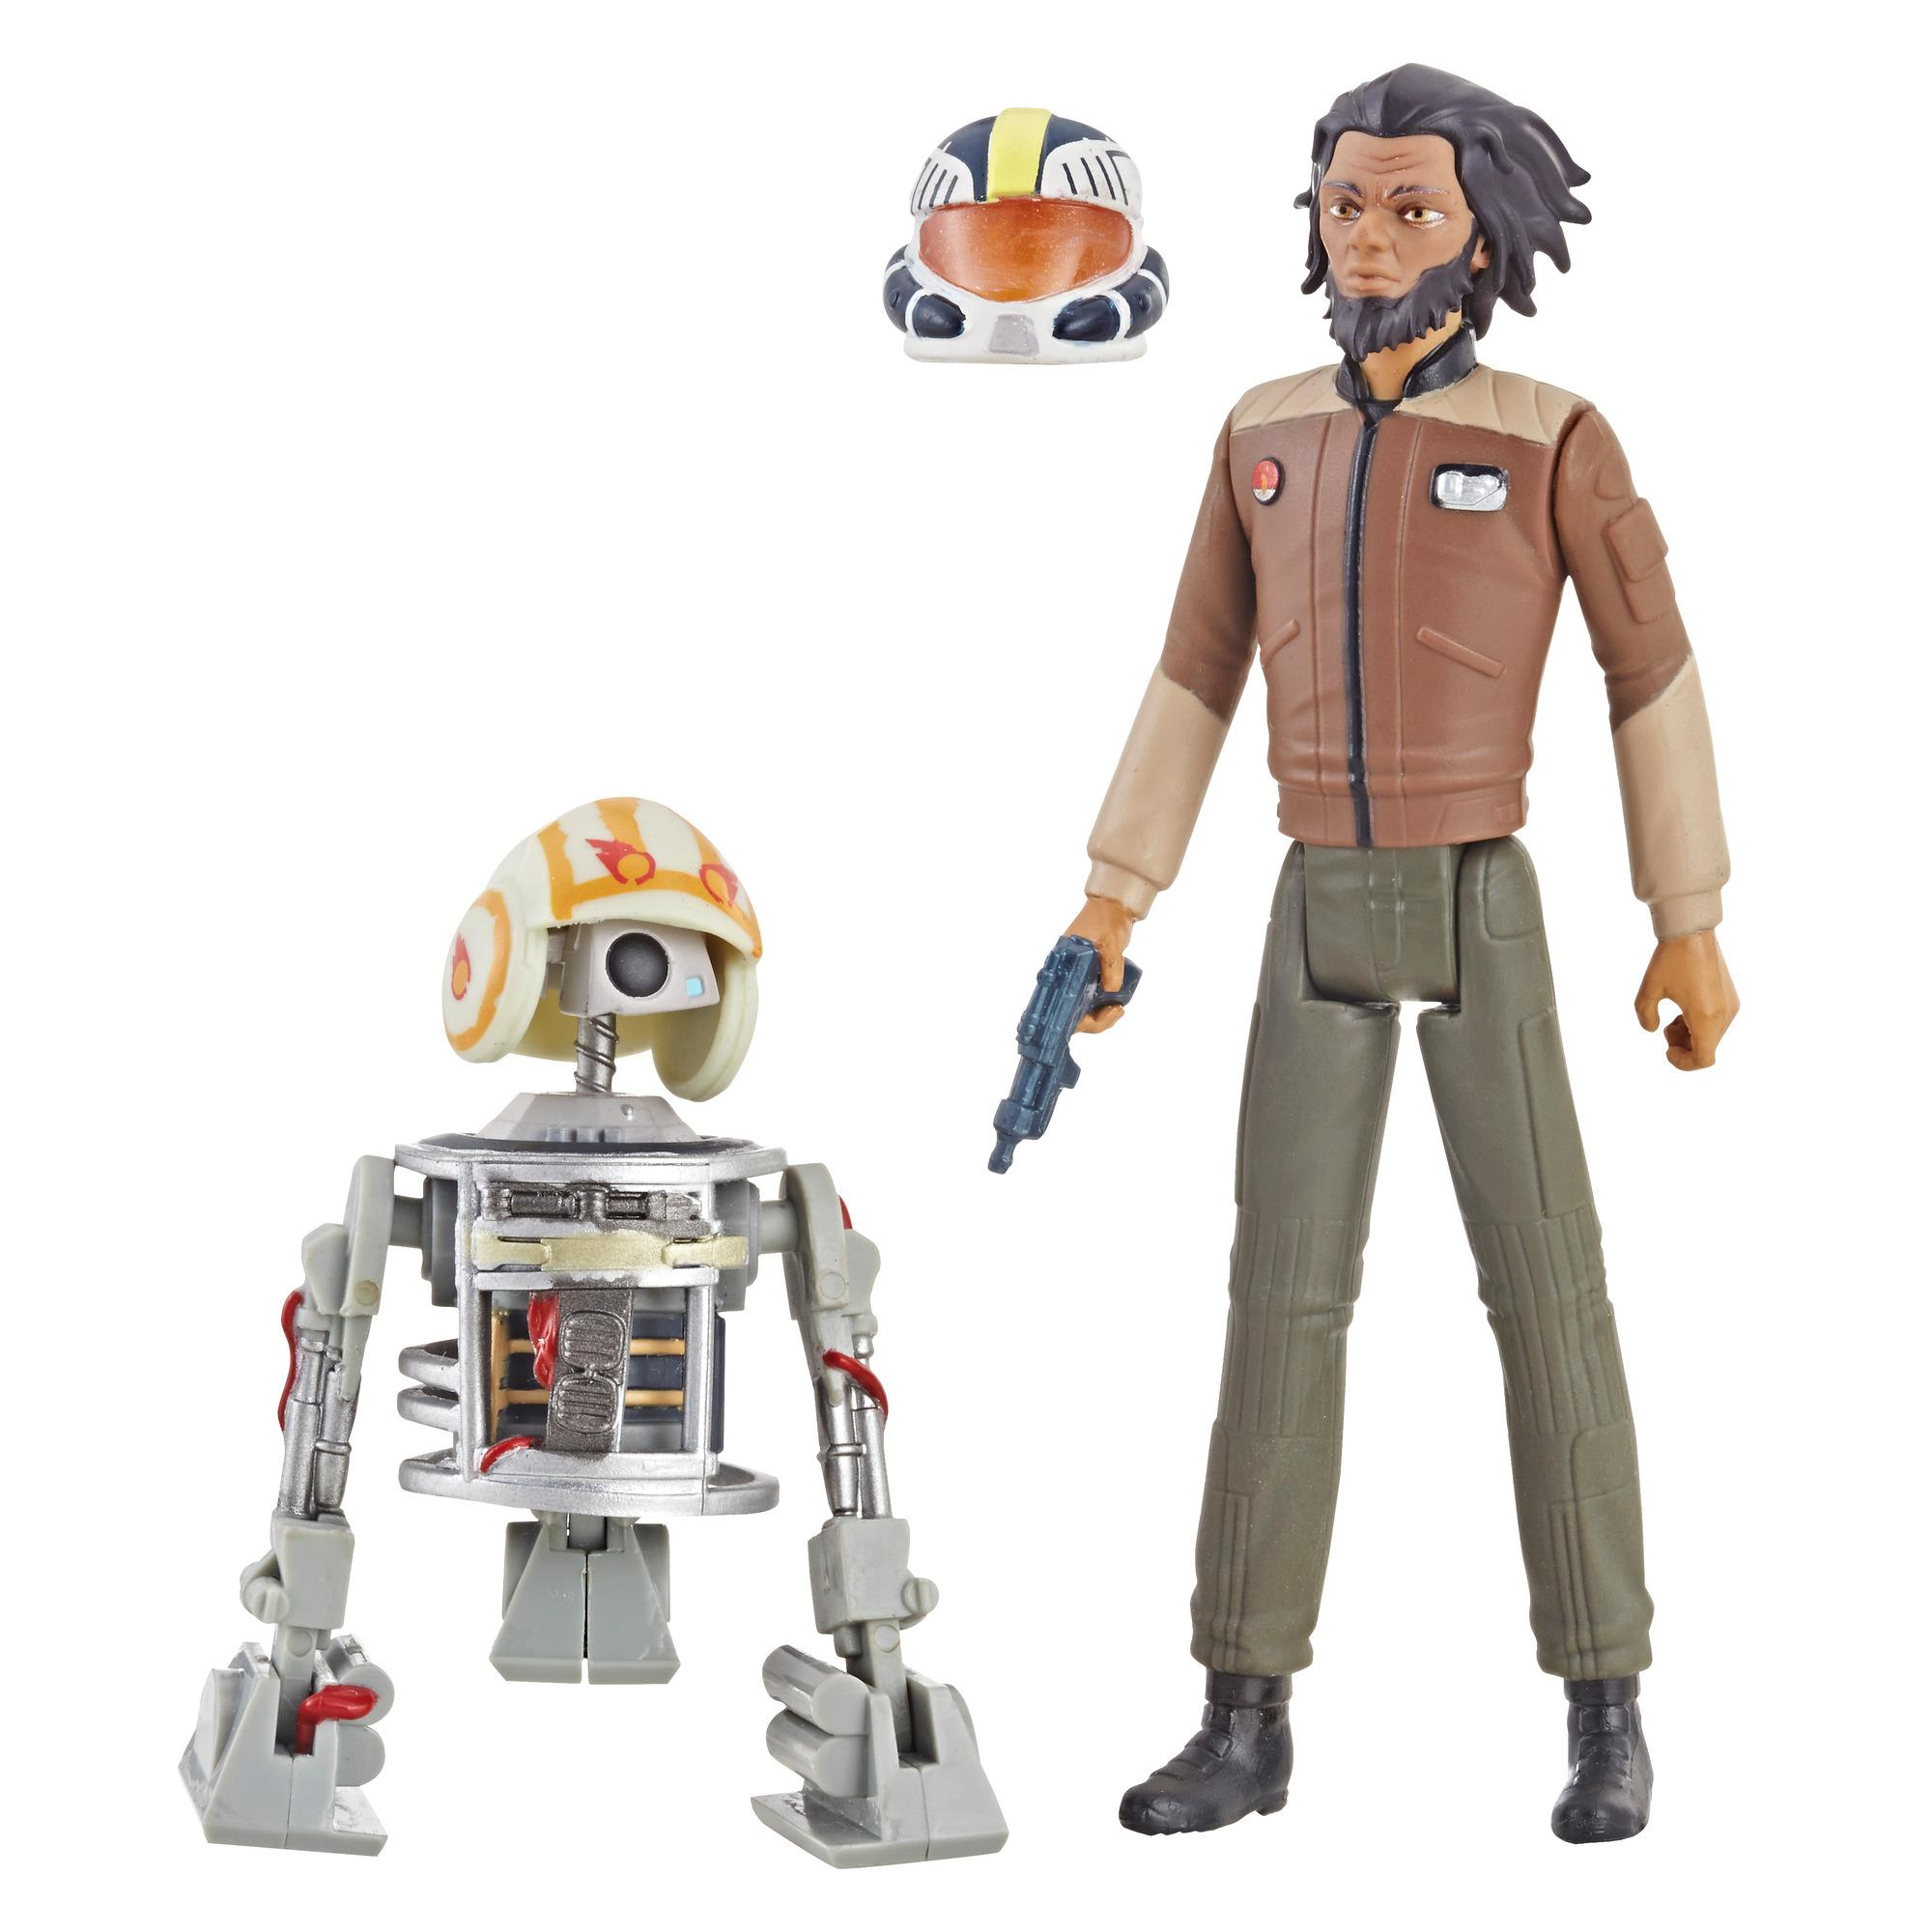 Star Wars Star Wars: Resistance Animated Series 3.75-inch Jarek Yeager and Bucket (R1-J5) Figure 2-Pack